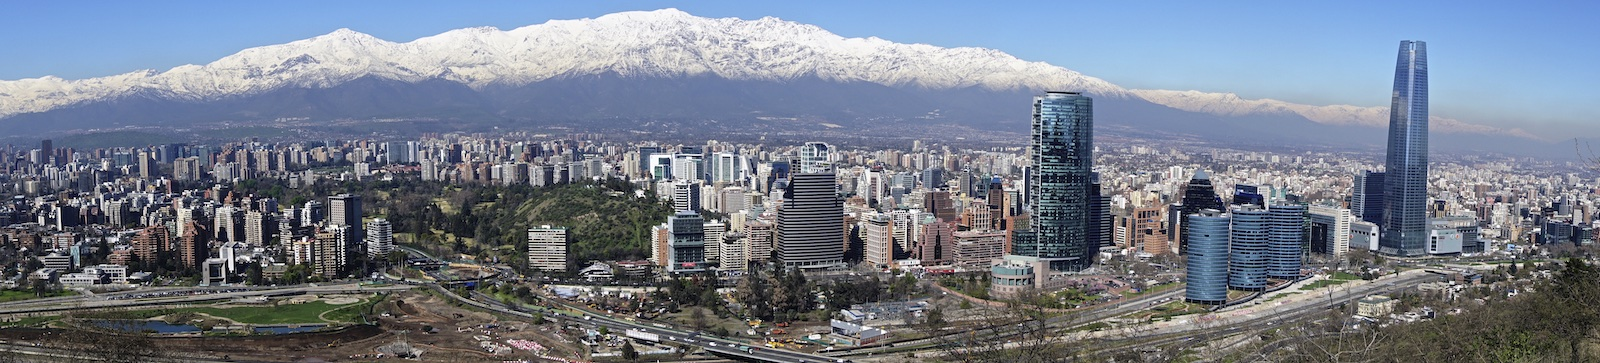 Santiago city, Chile